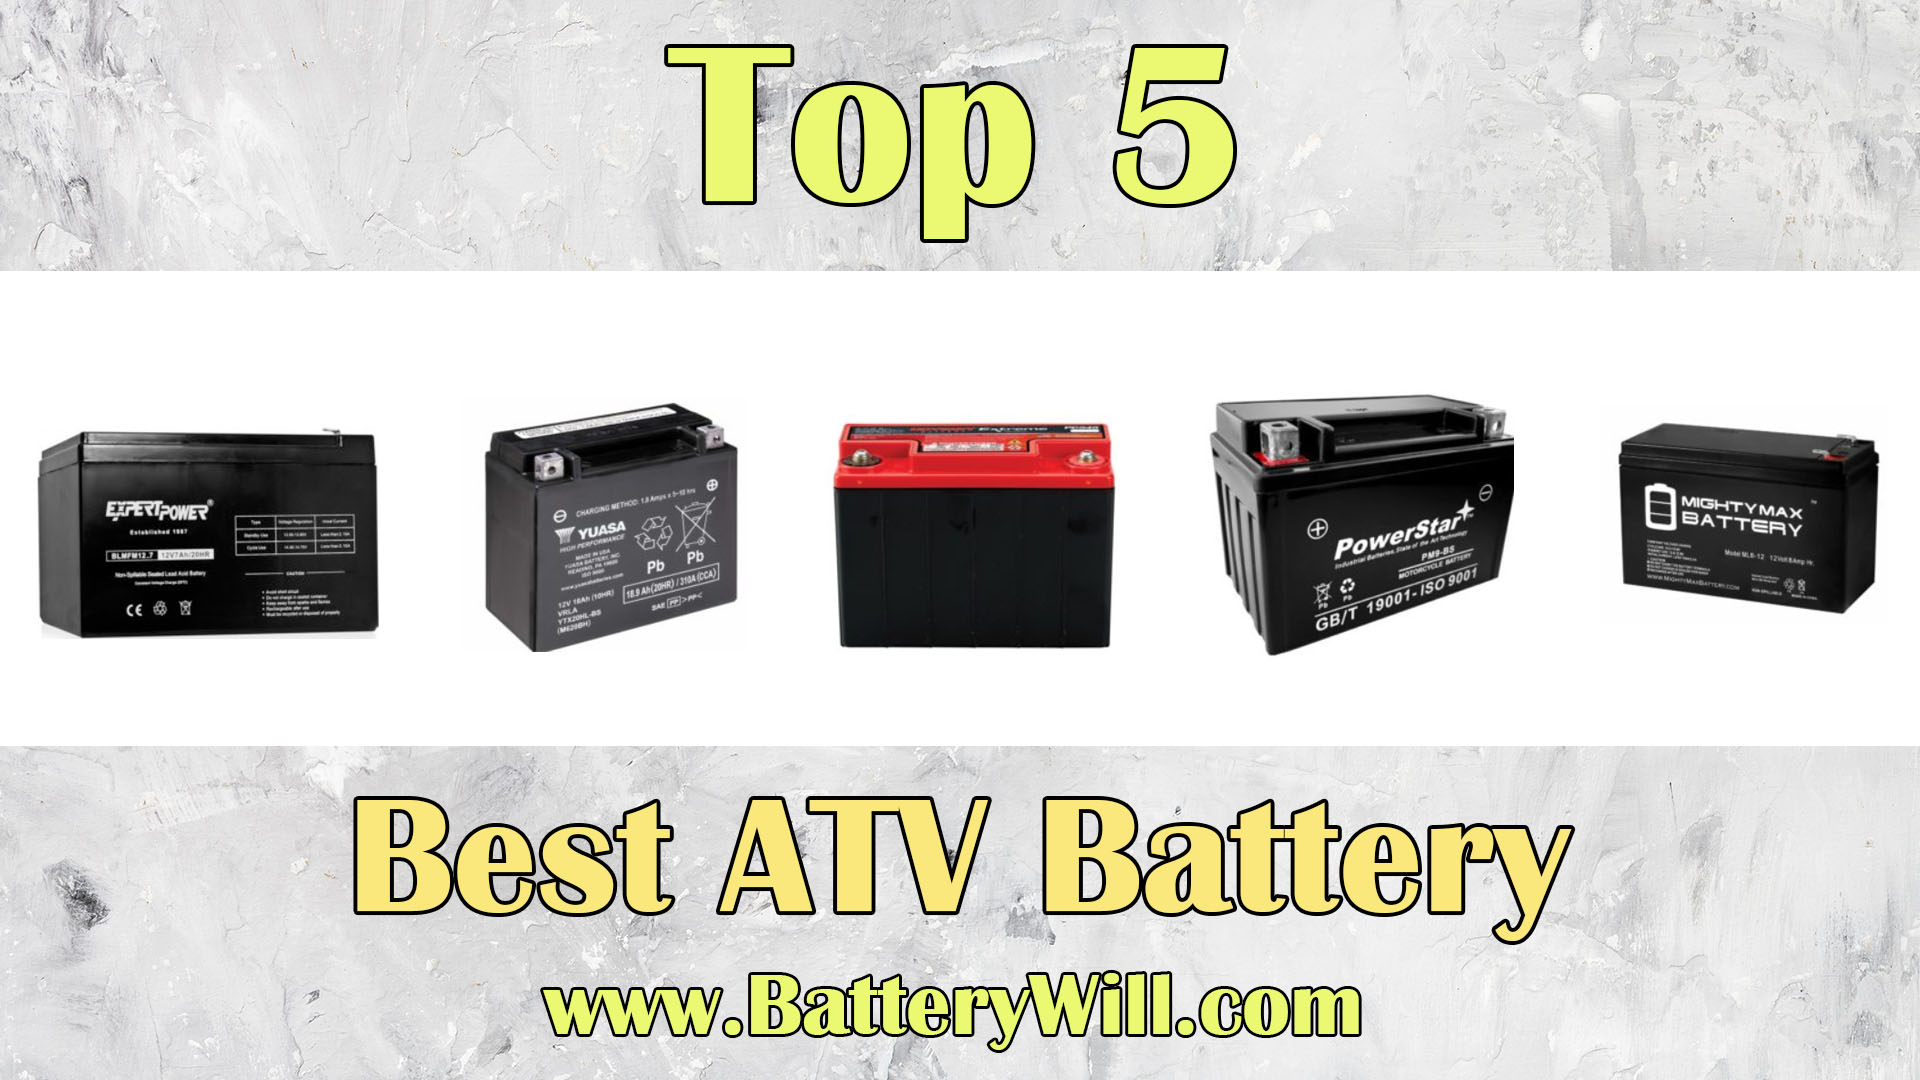 The complete guide to picking the best ATV battery - 2019